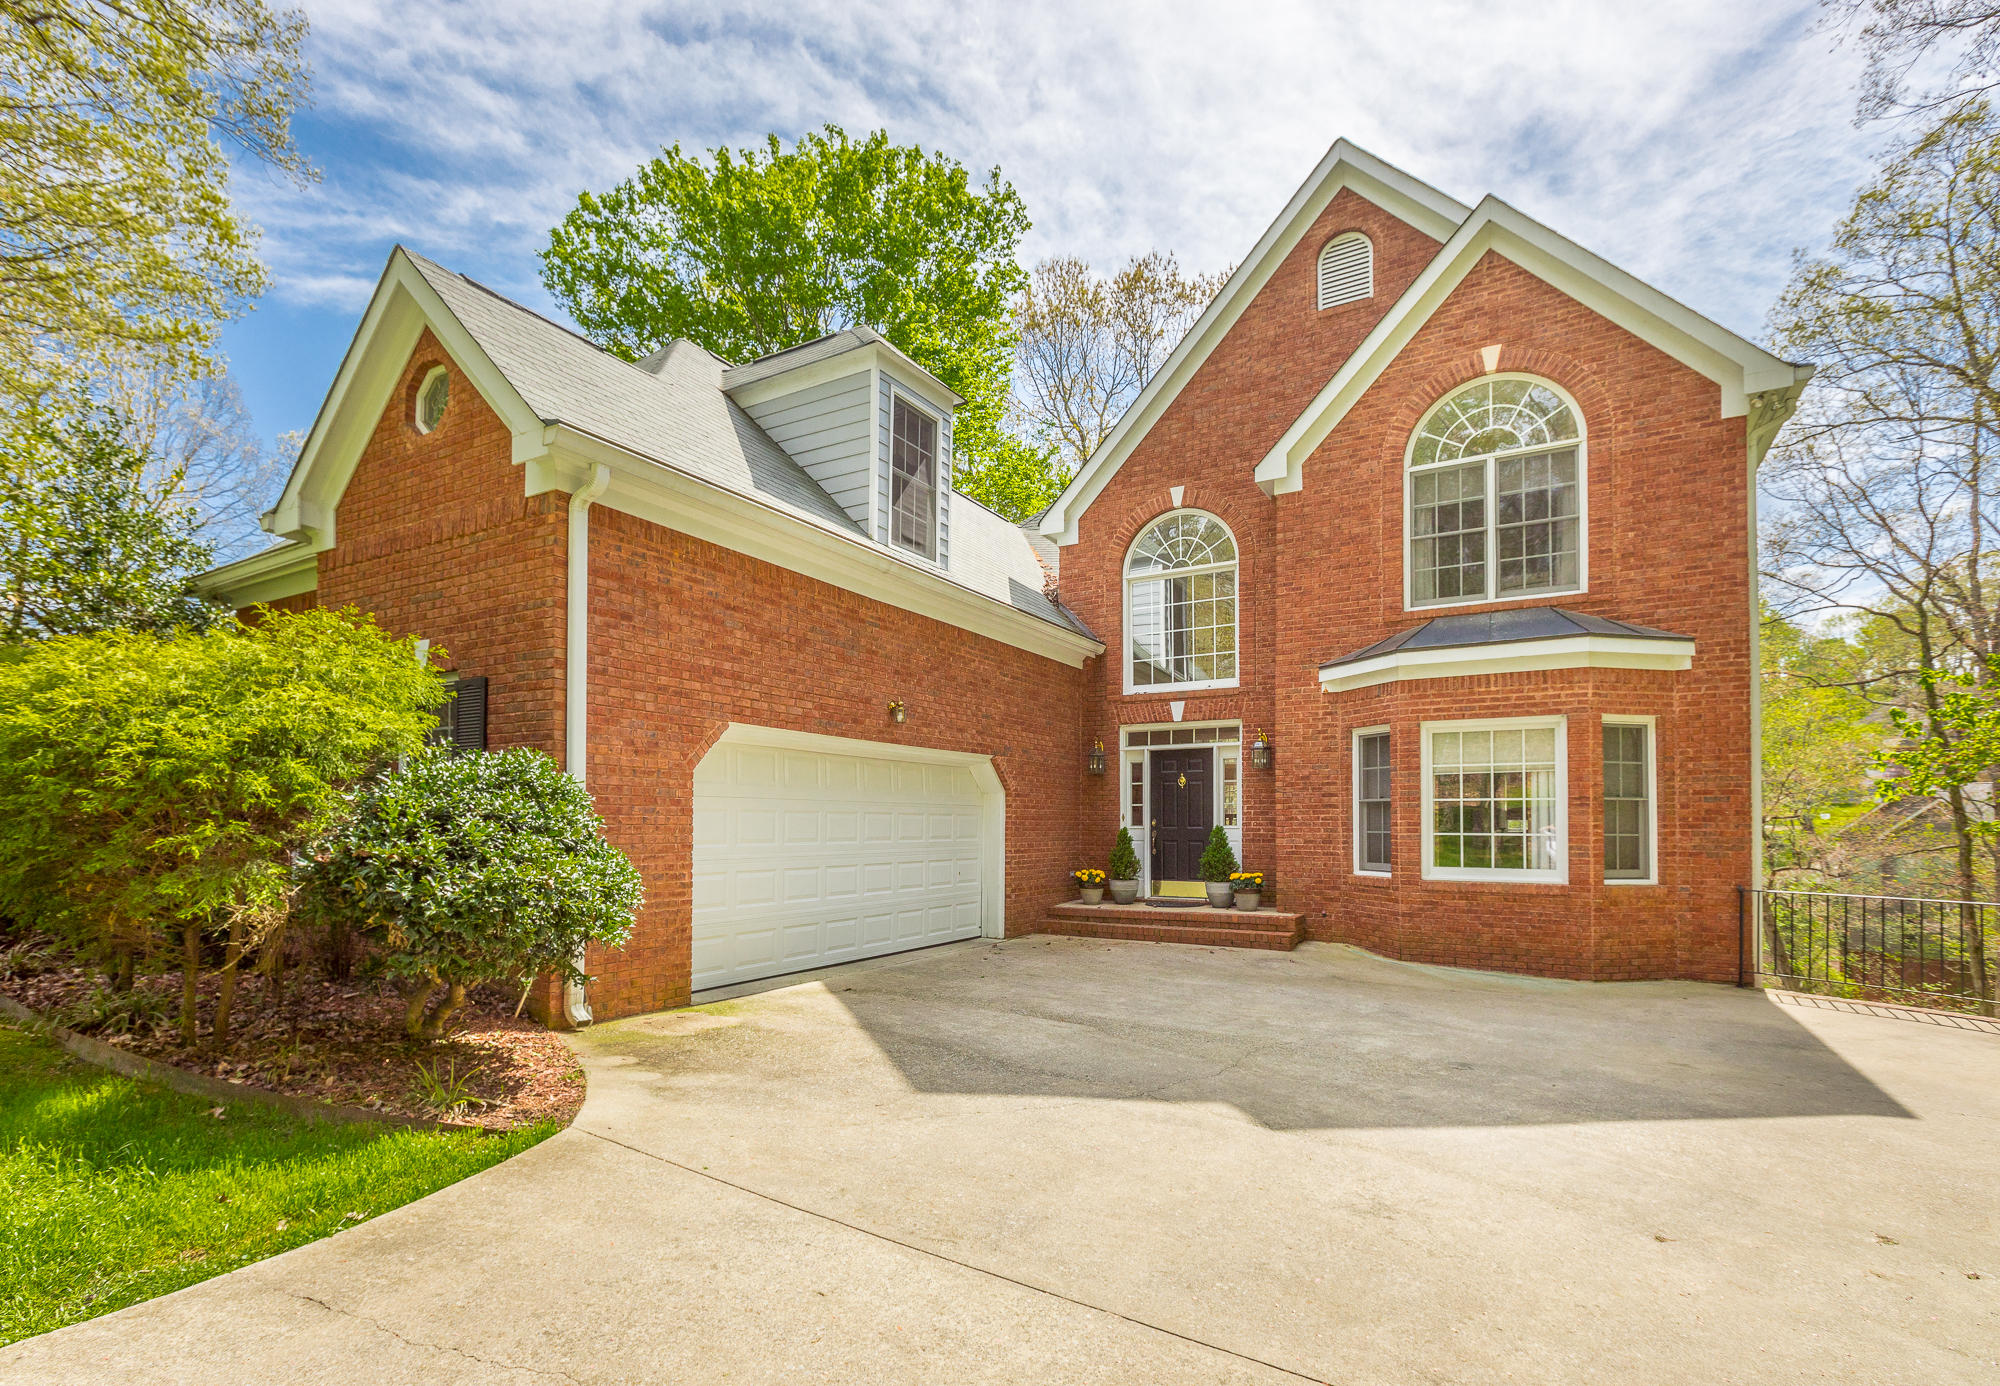 1814 Oak Cove Drive Chattanooga #homeforsaleinchattanooga, #ChattanoogaHomeForSale, #ThePaulaMcDanielGroup, #Chattanoogarealestateforsale, #Chattanoogarealestateforsale, #allbrickhomeforsale#, ThePaulaMcDanielGroup, #homeforsalewith - The Paula McDaniel Group With Real Estate Partners Chattanooga LLC Luxury homes for sale in Chattanooga and N. GA by The Paula McDaniel Group. Chattanooga homes and land for sale by The Paula McDaniel Group with Real Estate Partners Chattanooga LLC